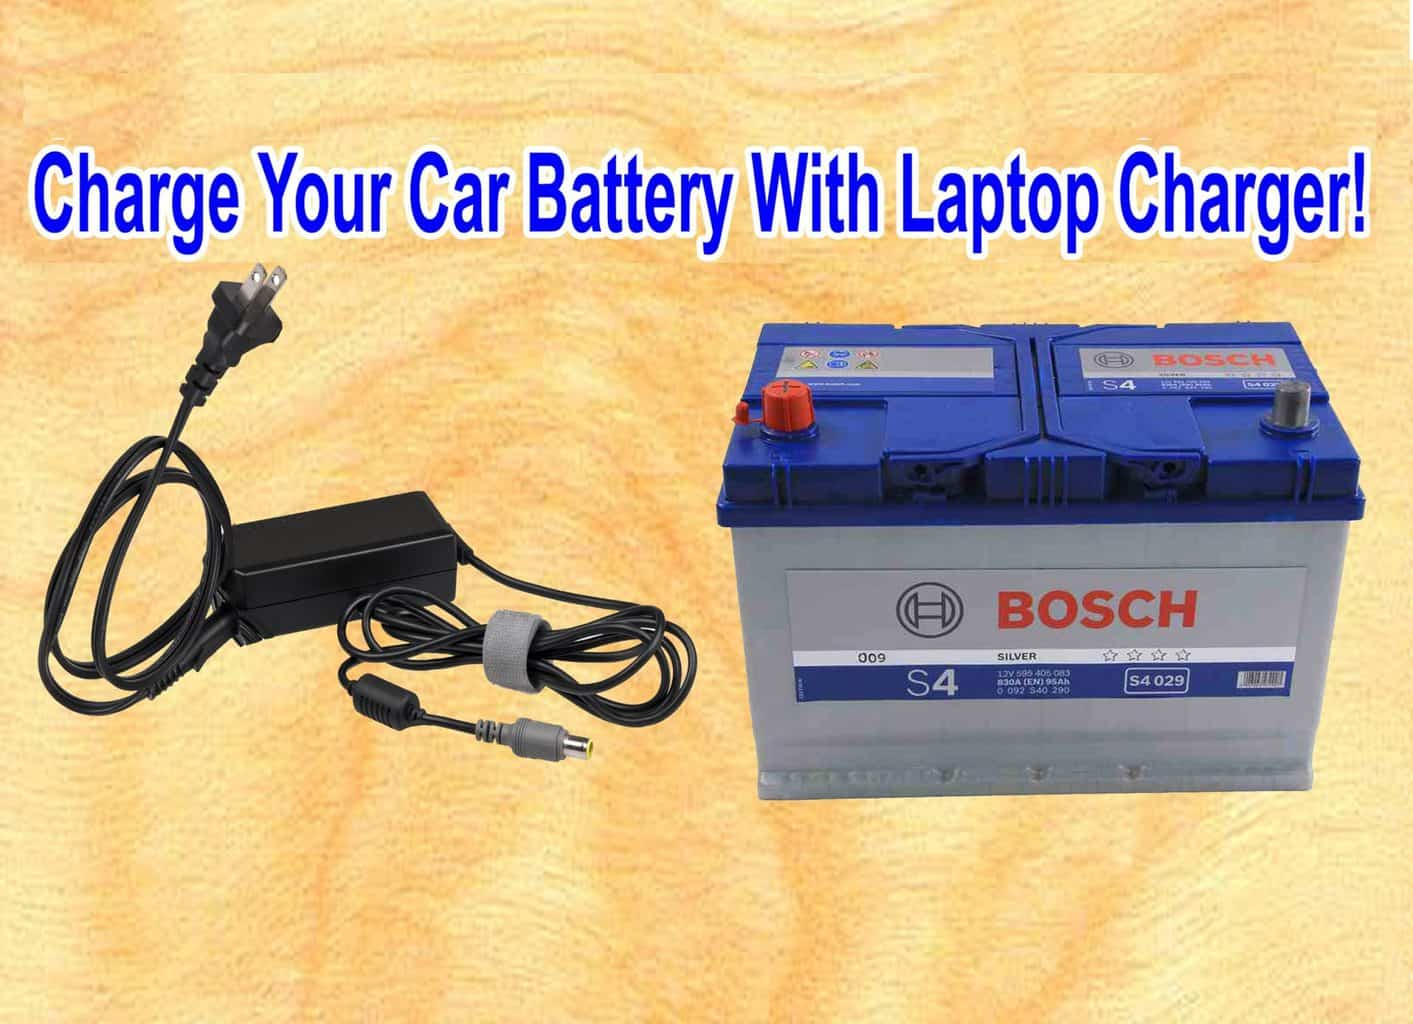 Charge a car battery with latop charger